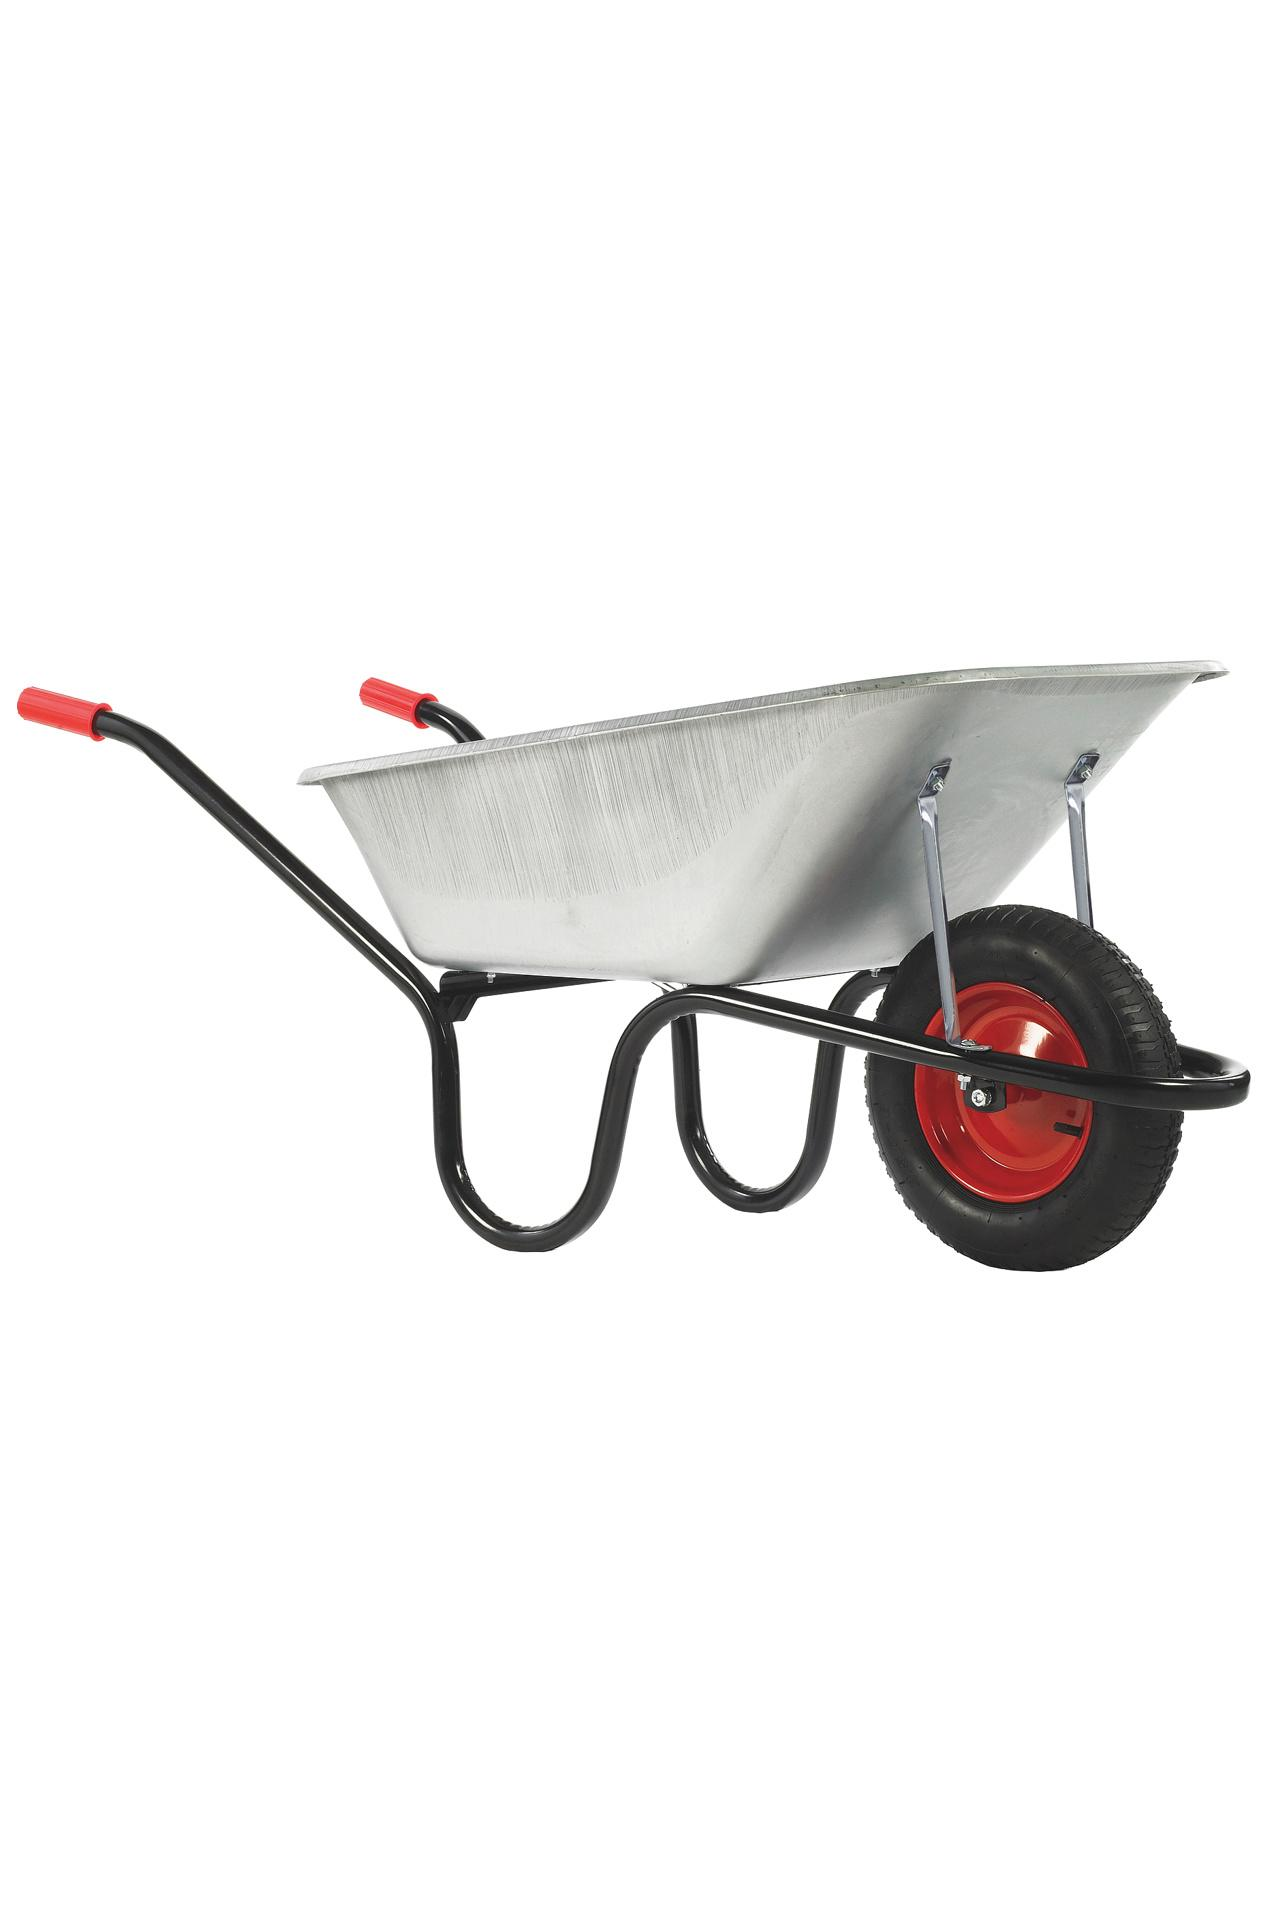 Haemmerlin Camden Classic Galvanised 85L Solid Wheel Wheelbarrow #3